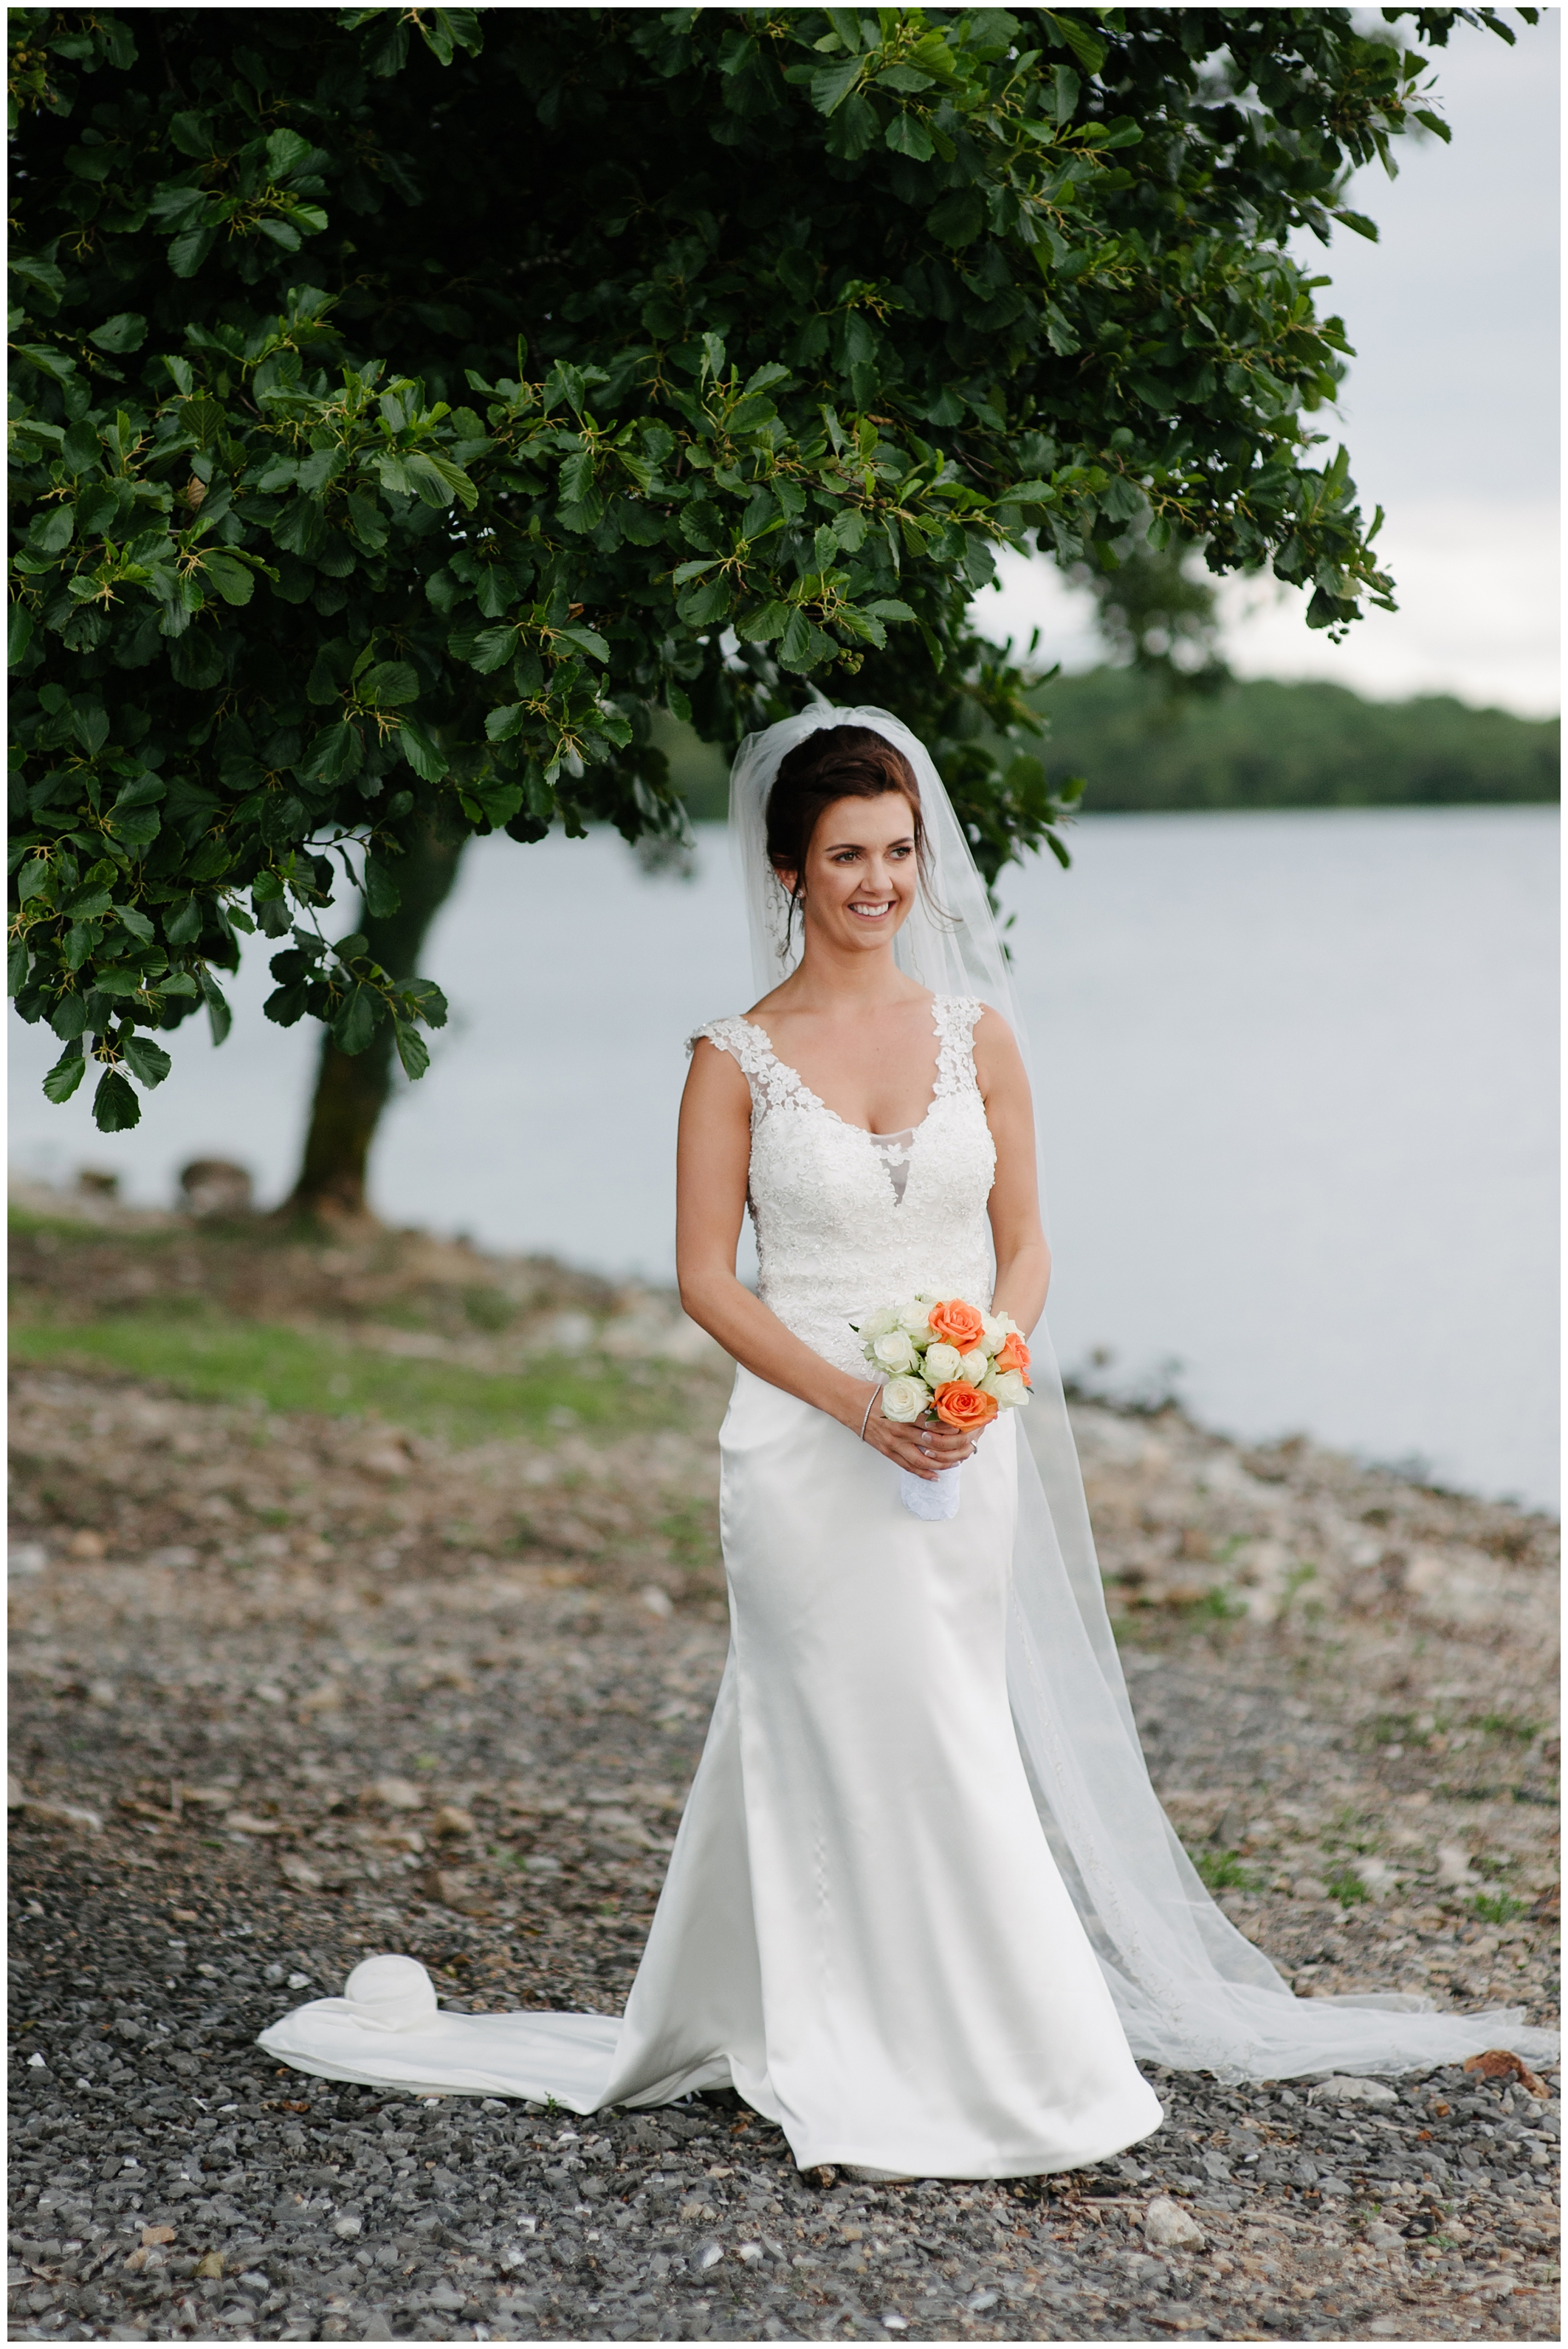 Lynsey_Andy_Rossharbour_Fermanagh_wedding_jude_browne_photography_0094.jpg